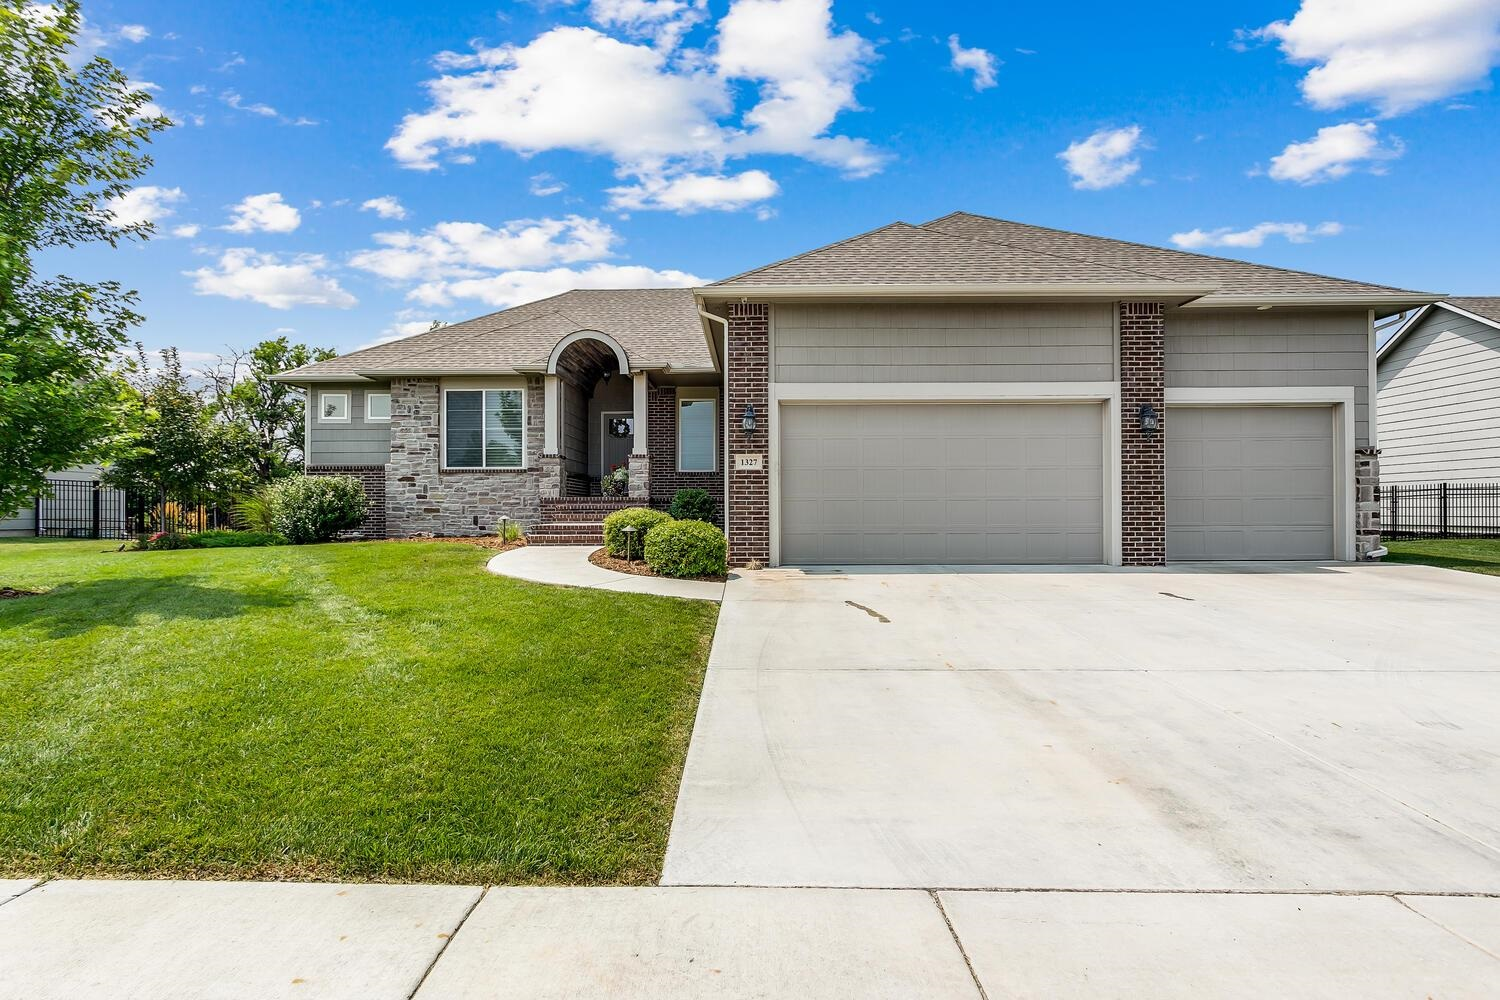 This premier home is located in the sought after Shadow Rock neighborhood! This 5 bedroom home has a